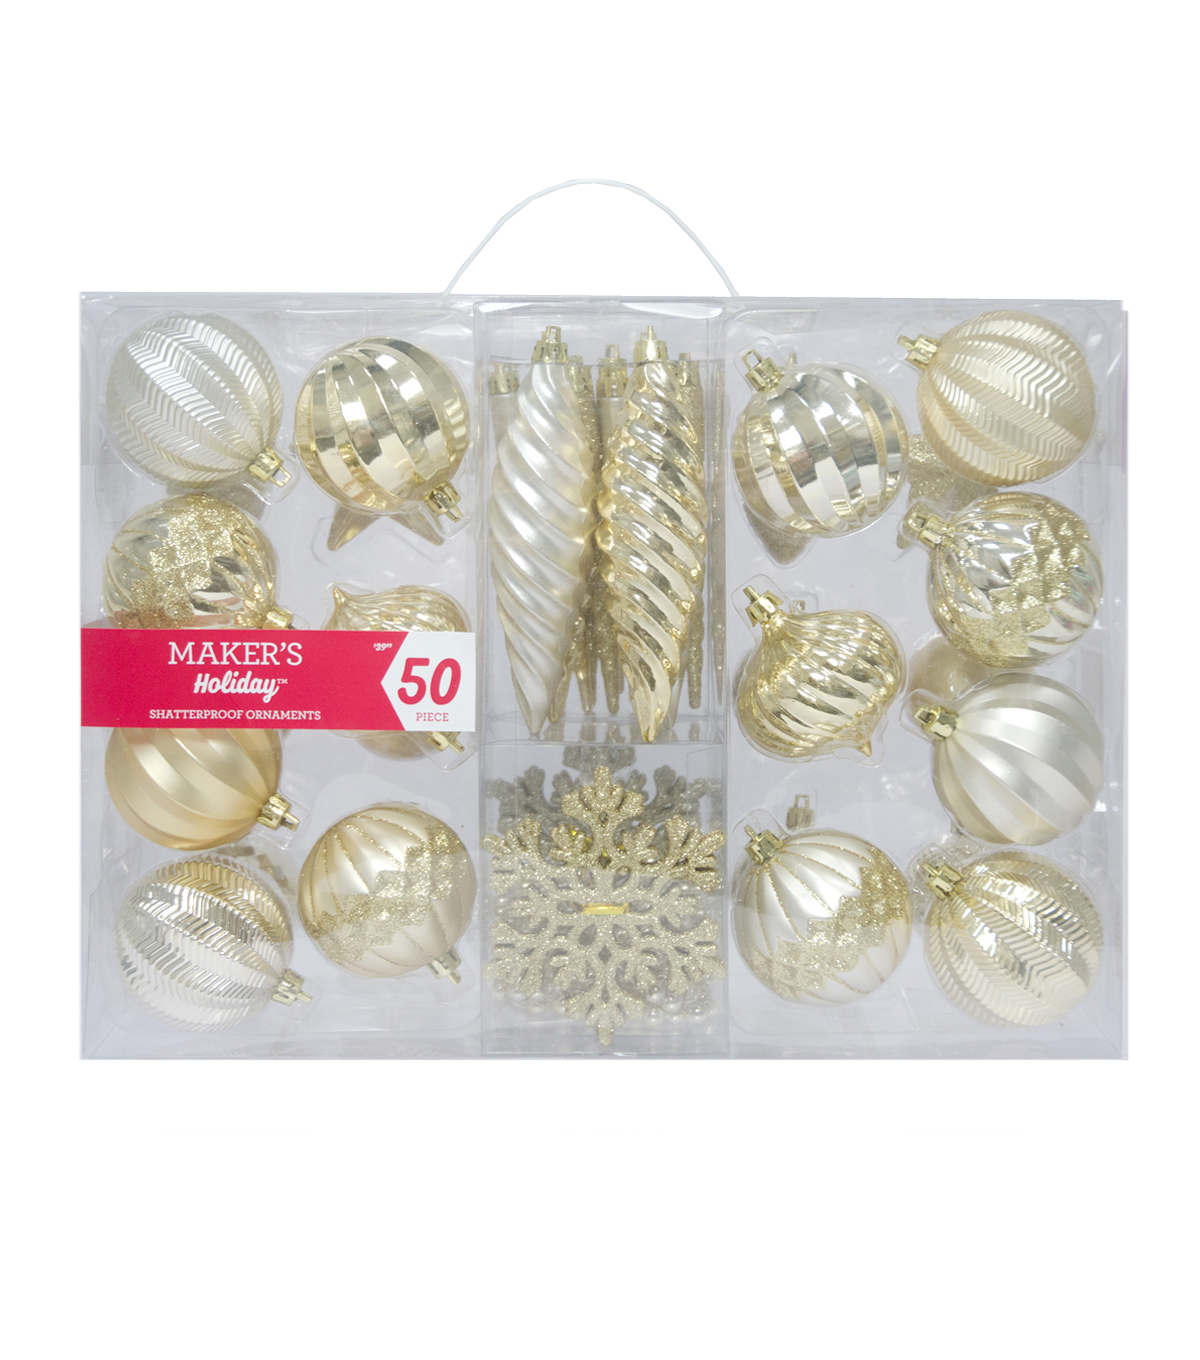 Maker\u0027s Holiday Christmas 50 pk Shatterproof Ornament-Gold & Silver